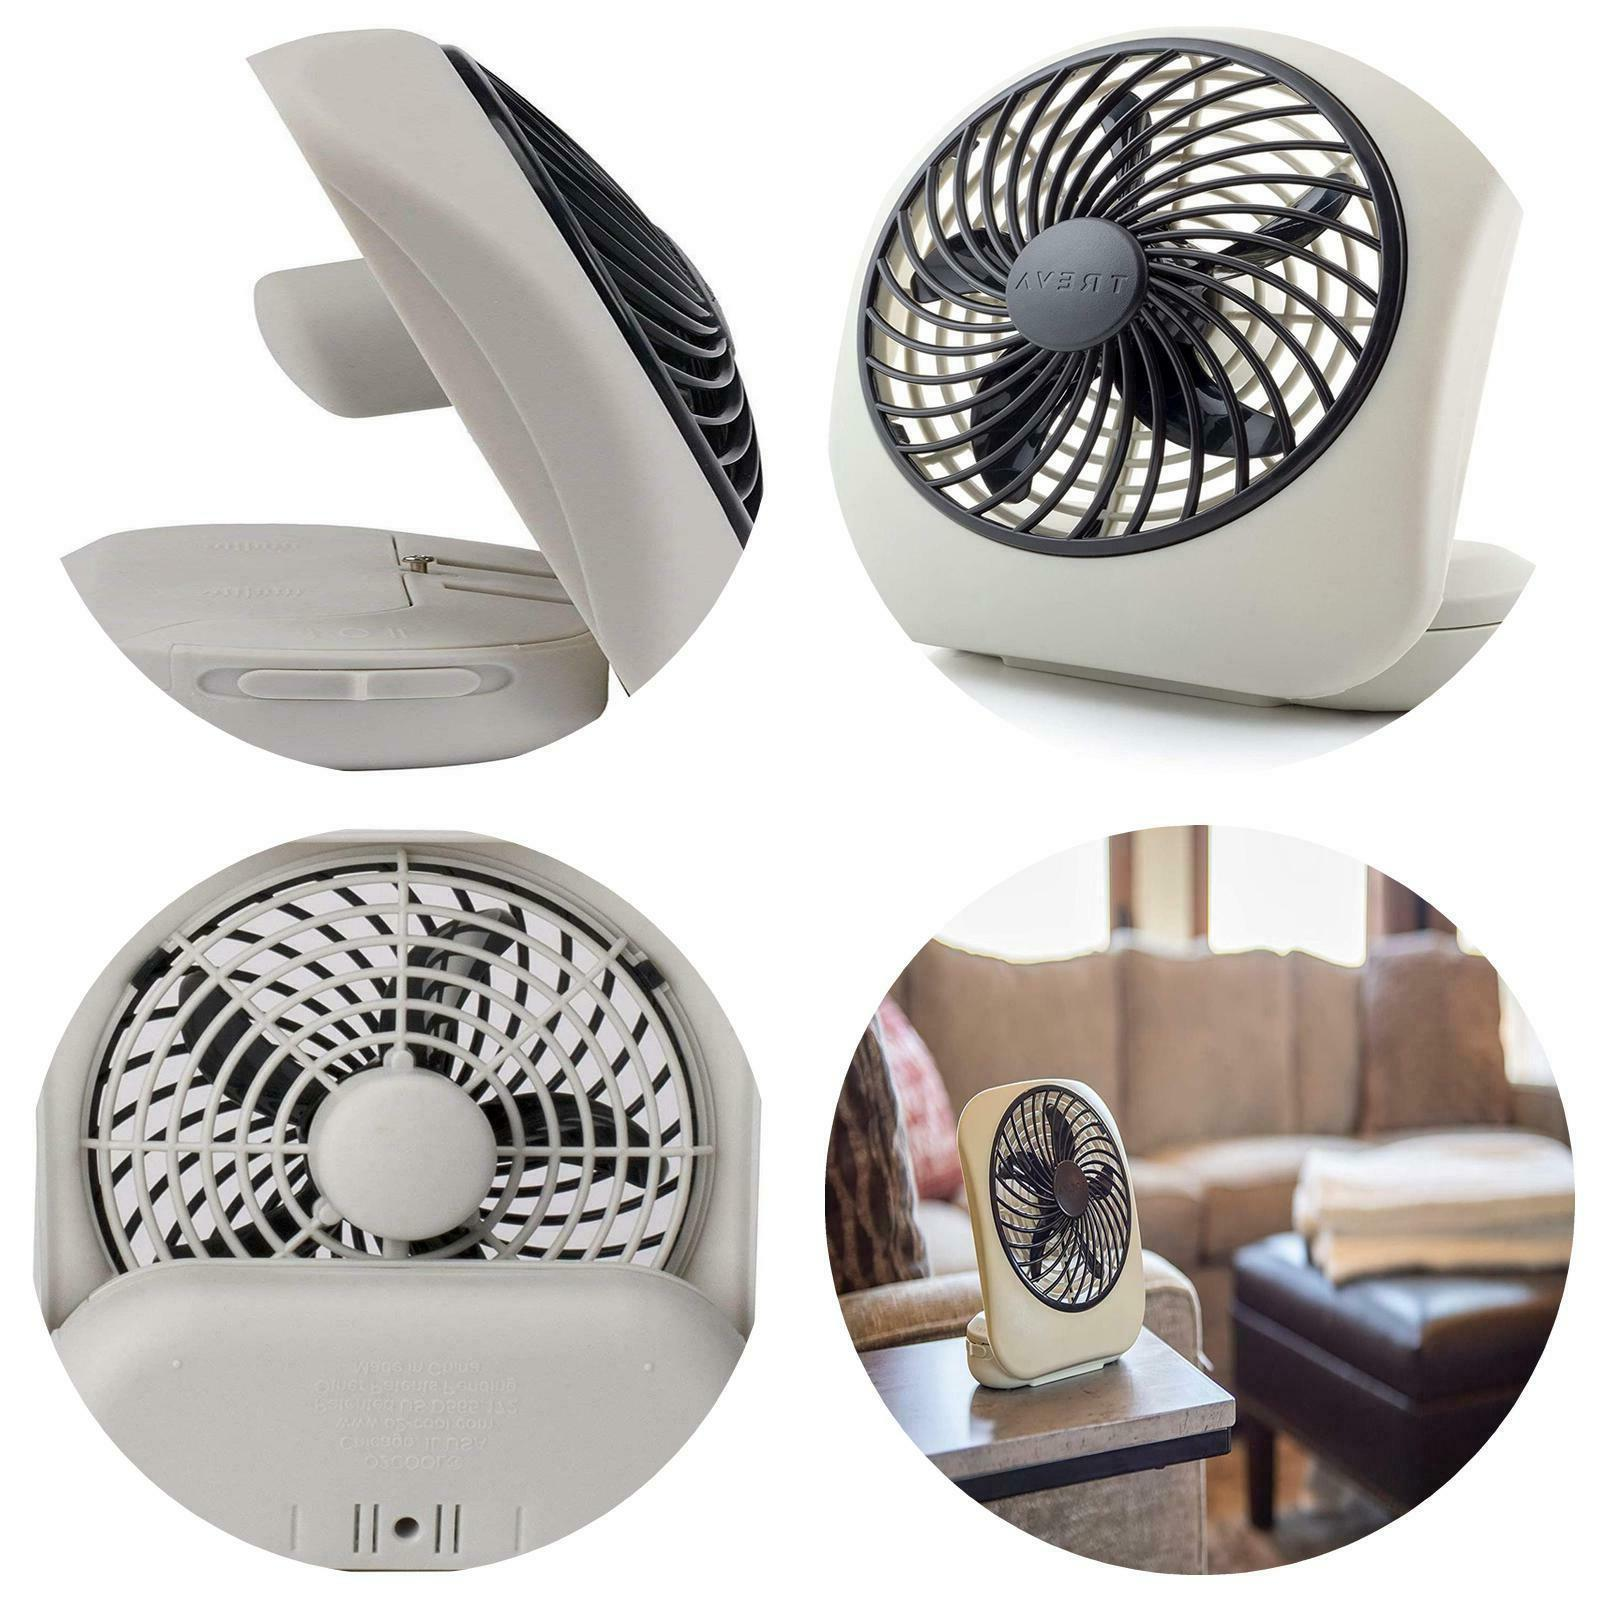 O2COOL 5 Inch Portable Fan Camp Two Speed